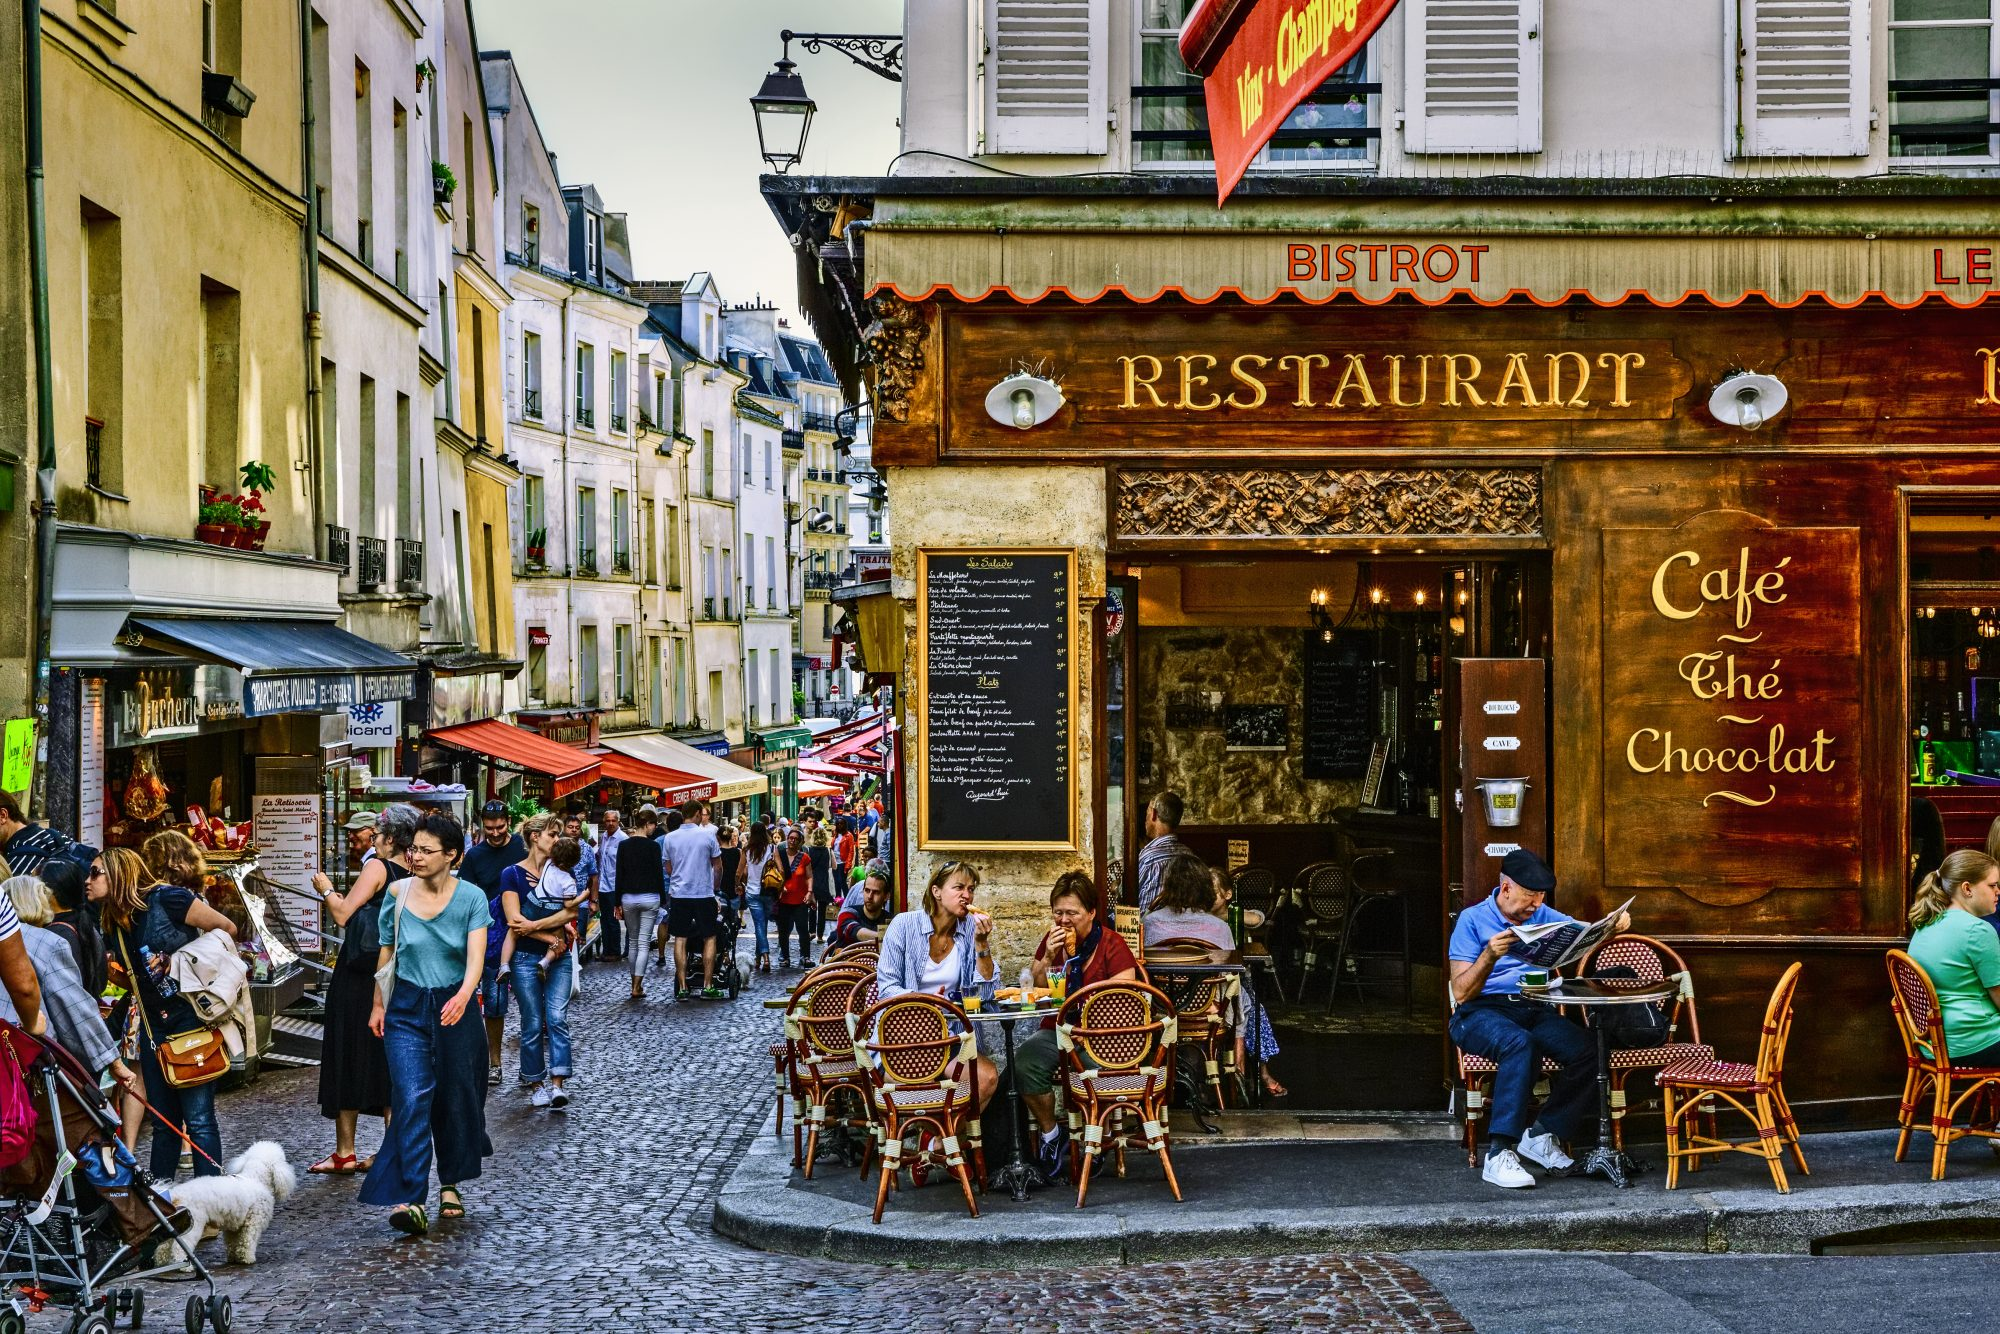 Shops and Bistrots in Mouffetard Street, Paris, France